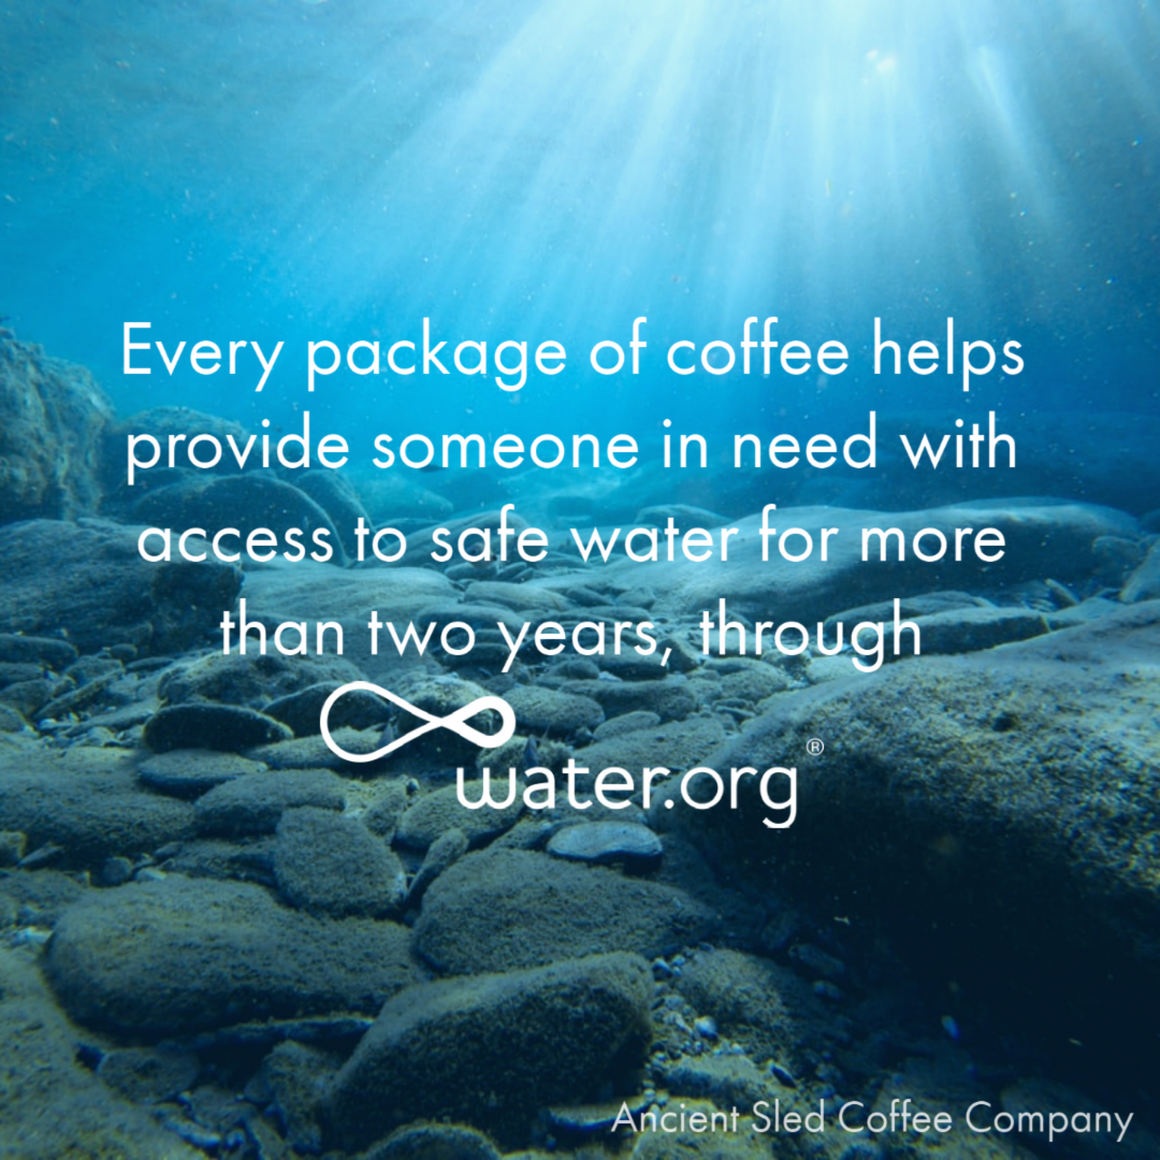 Helping to provide access to safe water through water.org